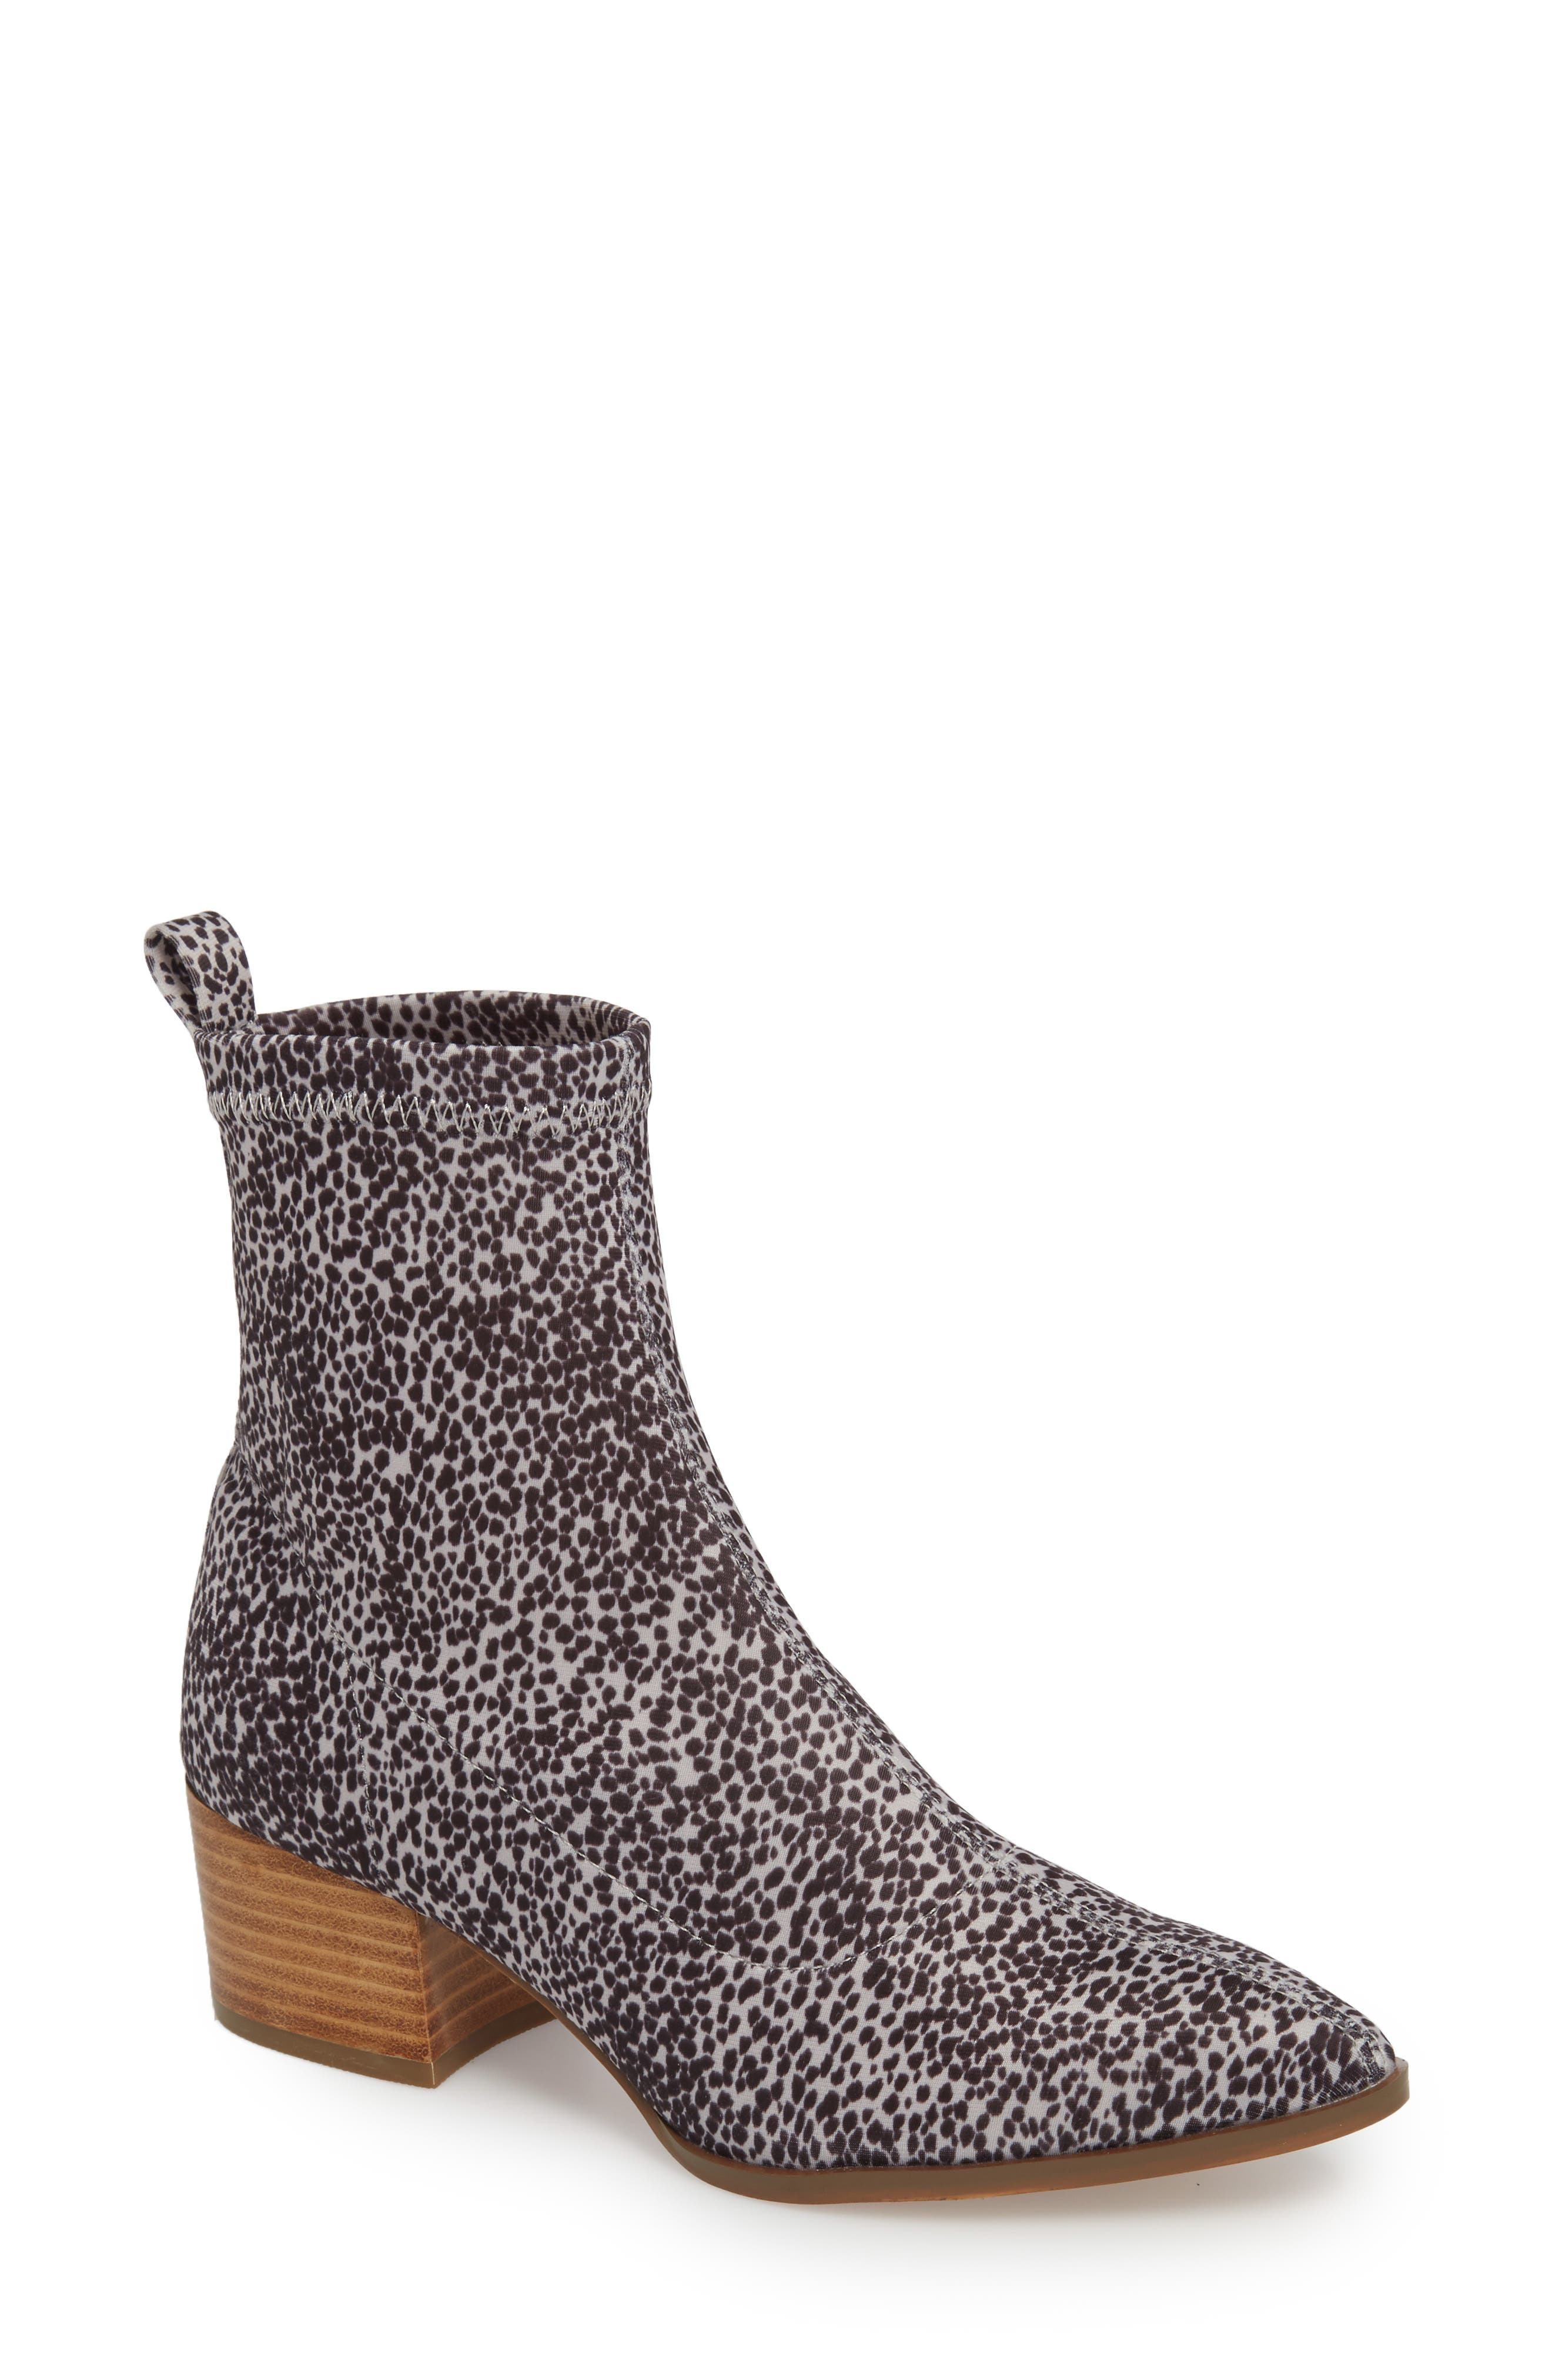 Amuse Society x Matisse Liliana Sock Bootie,                         Main,                         color, 111